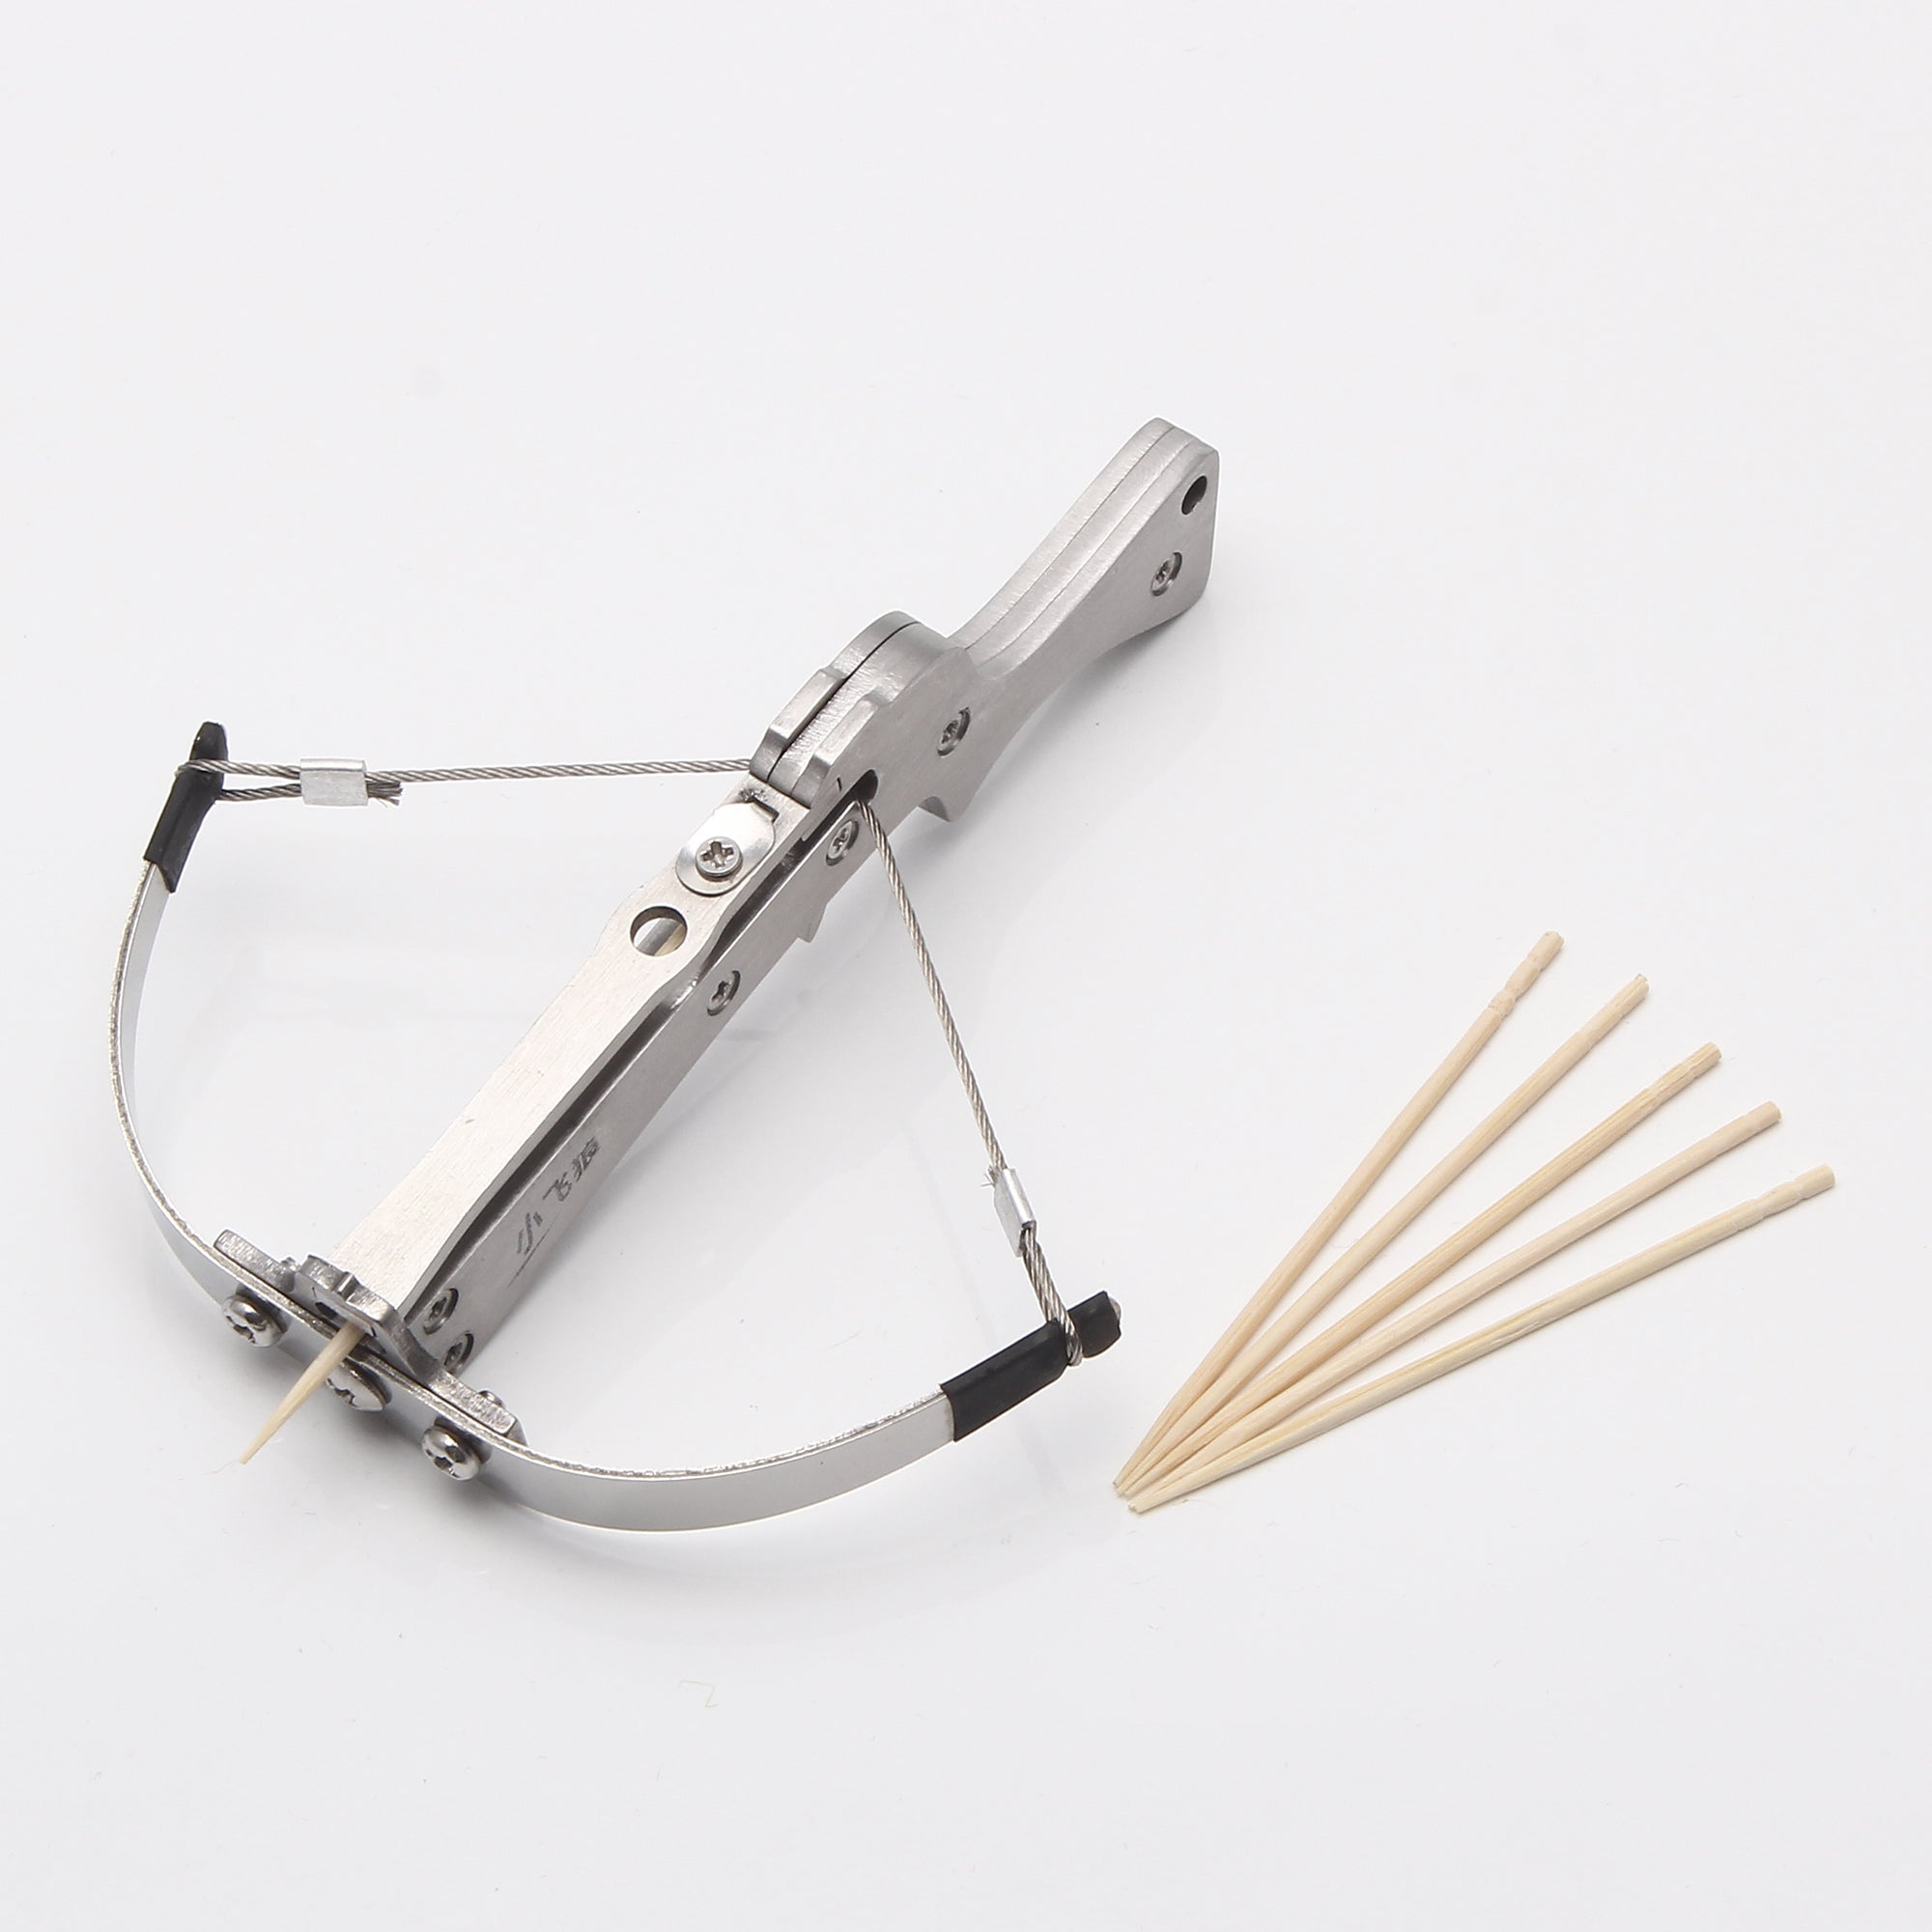 Mini Powerful Stainless Steel Crossbow  Launch Steel Ball or Toothpick